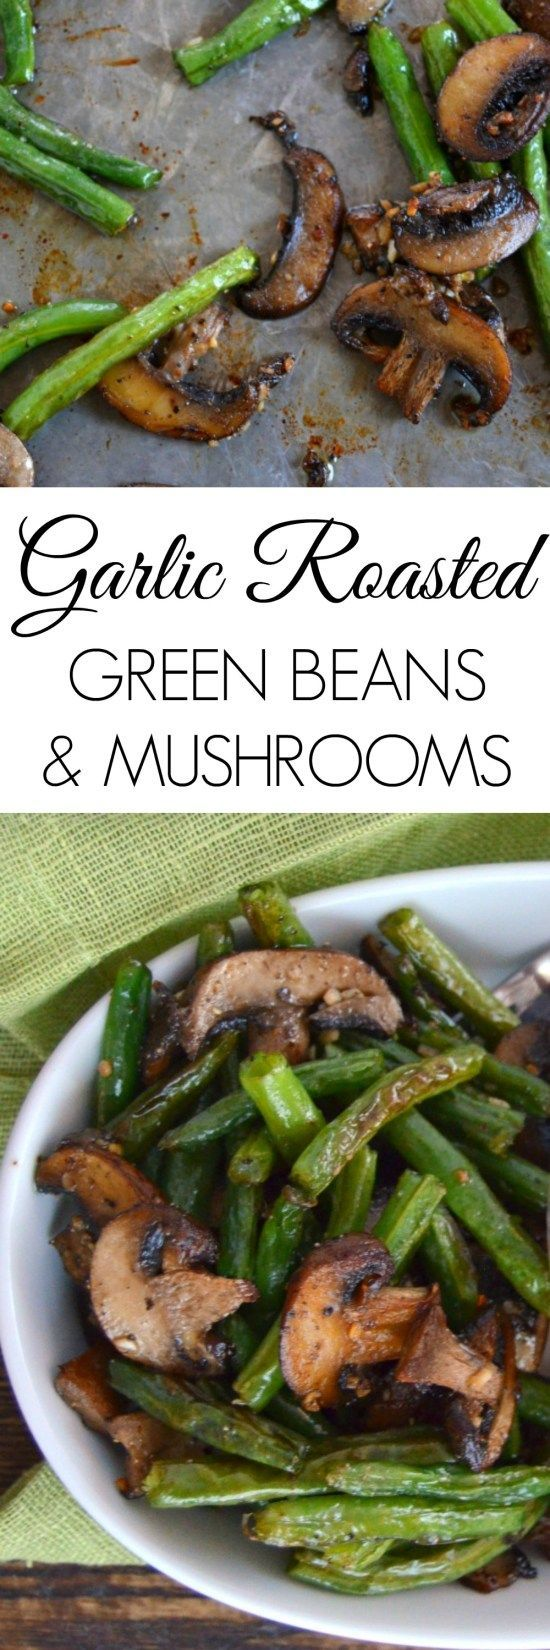 Garlic Roasted Green Beans and Mushrooms Vegetable Side Dish Recipe via Kate Moving Forward - Healthy Side Dish - Roasted Vegetables - Roasted Vegetables Oven - Roasted Vegetables Recipe - Roasted Vegetables Healthy